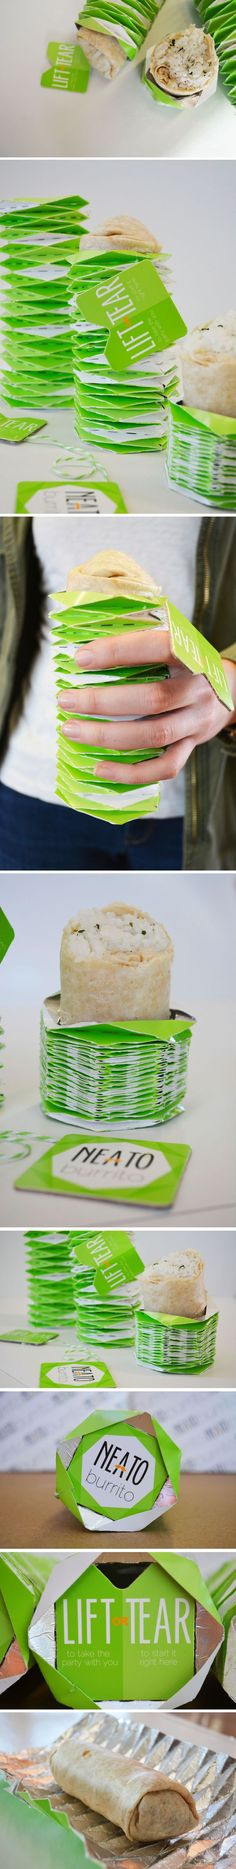 Neeto Burrito Student Packaging Concept